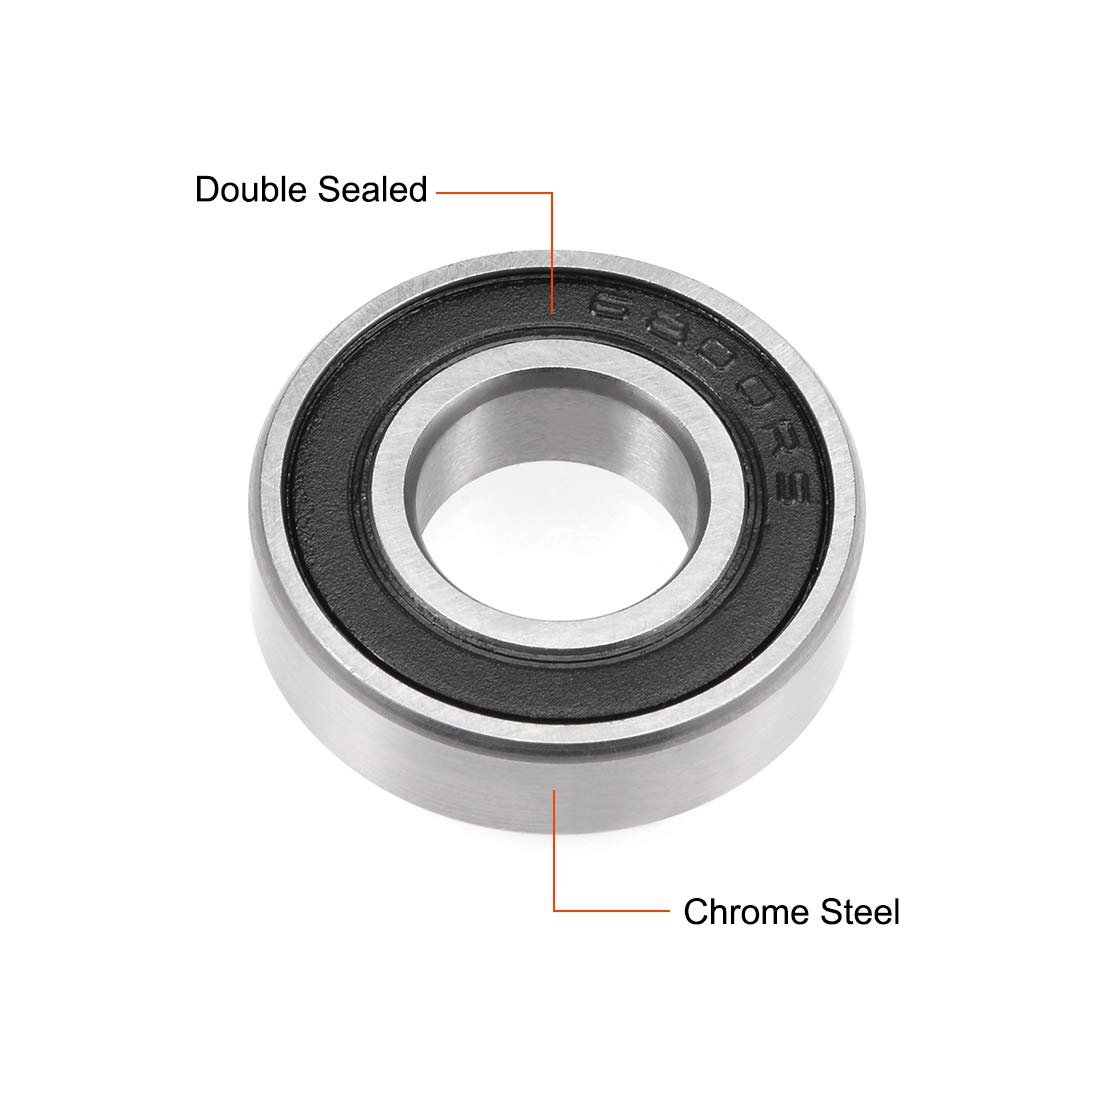 6803-2RS Ball Bearings 17x26x5mm Double Sealed Chrome Steel Blue Cover P6